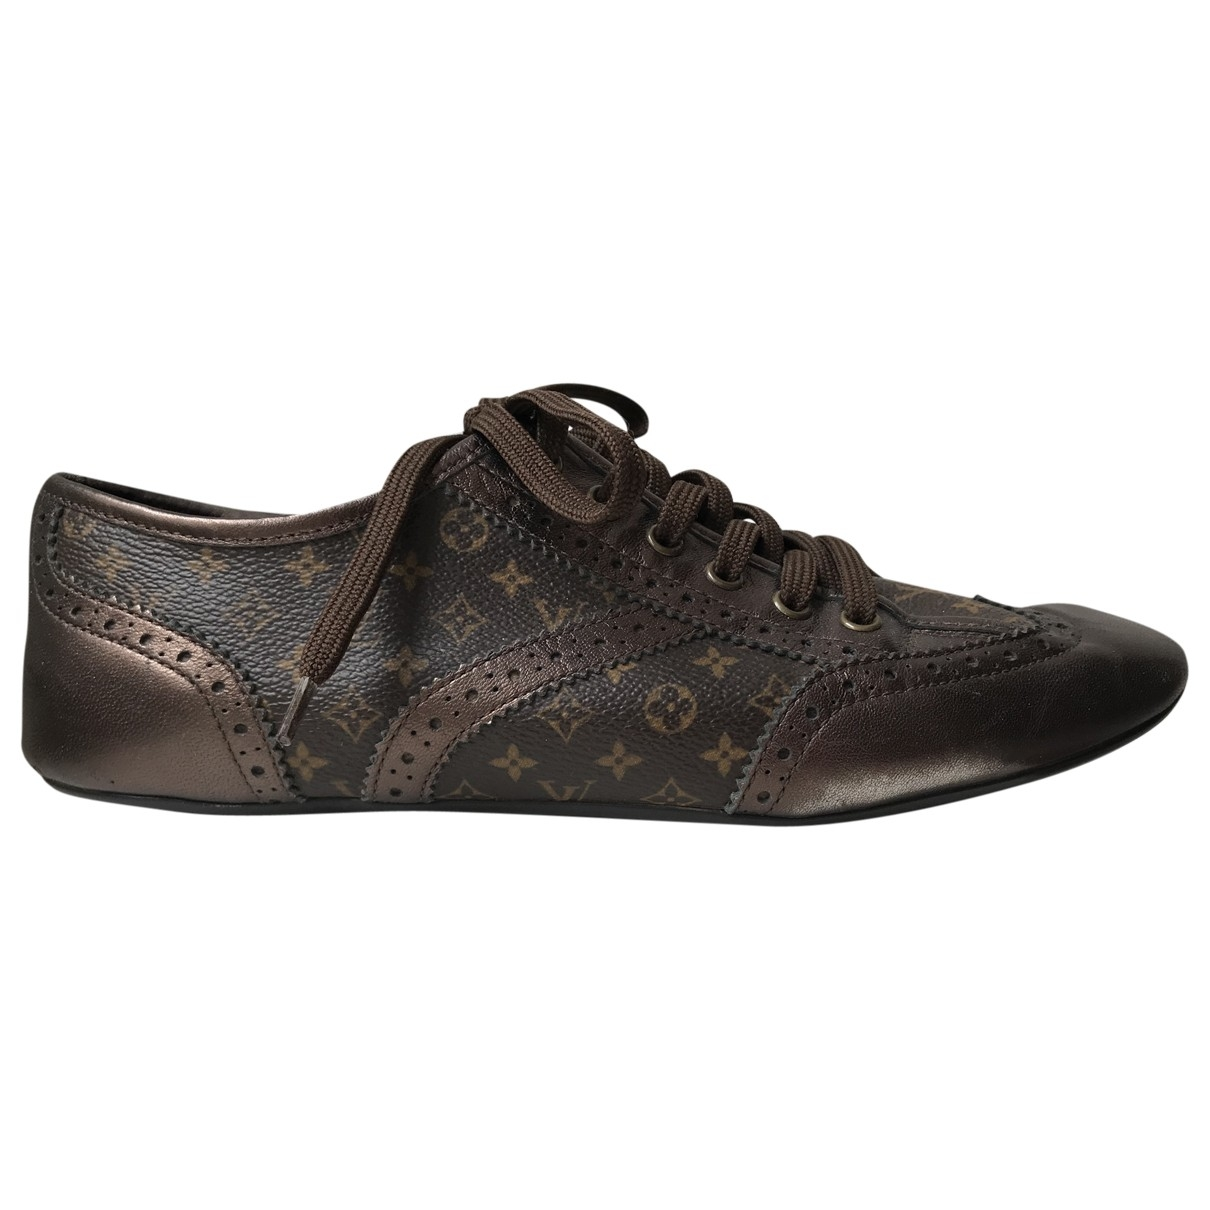 Louis Vuitton \N Brown Patent leather Trainers for Women 38.5 IT